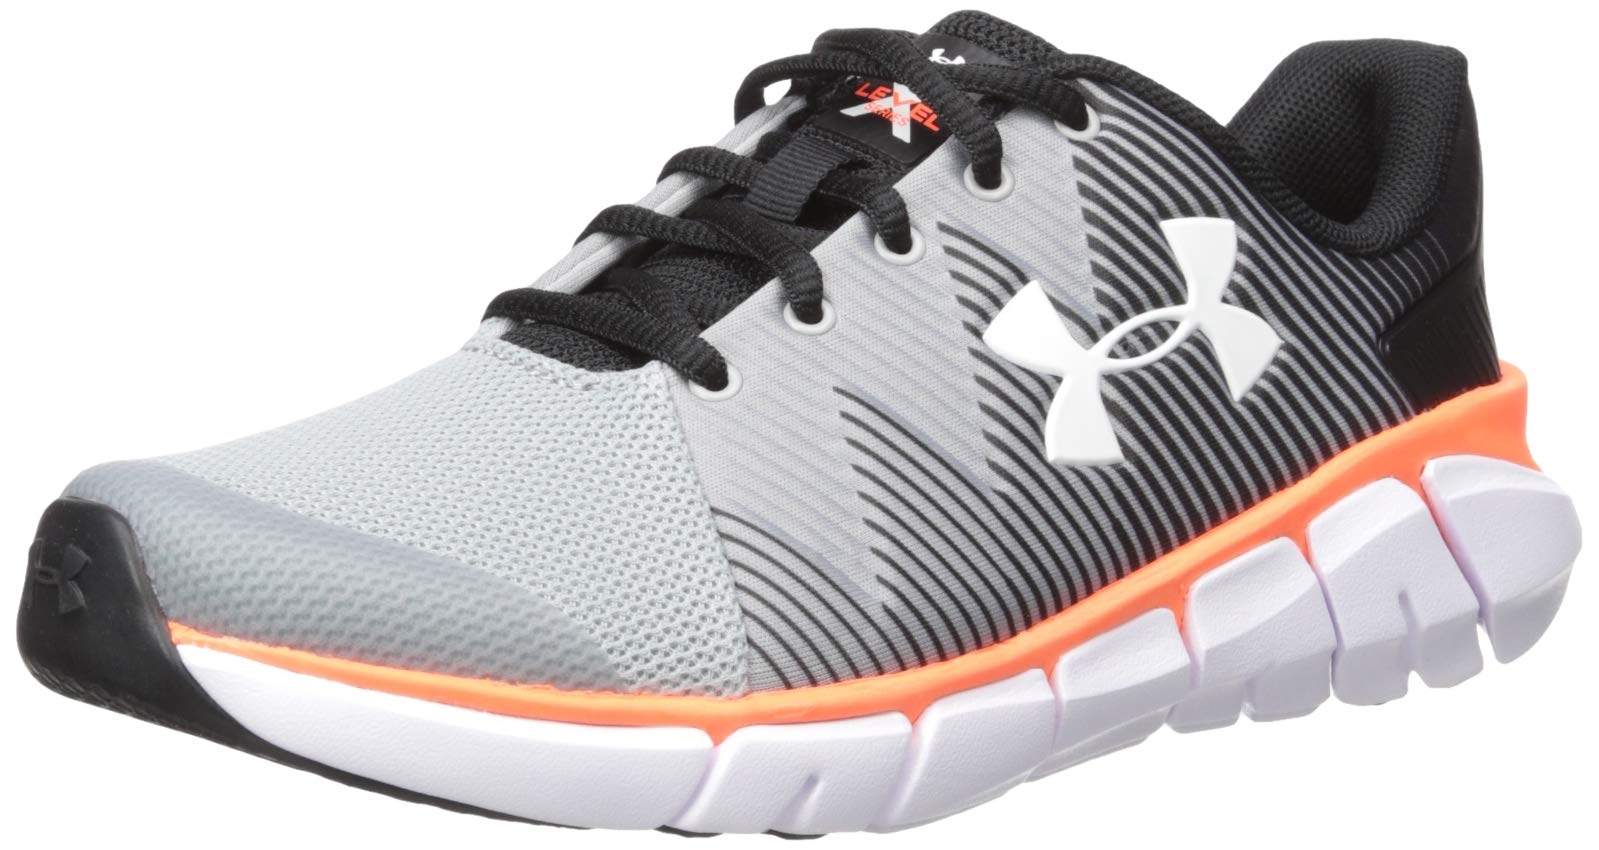 Under Armour Boys' Grade School X Level Scramjet 2 Sneaker, Black (001)/Mod Gray, 4 M US Big Kid